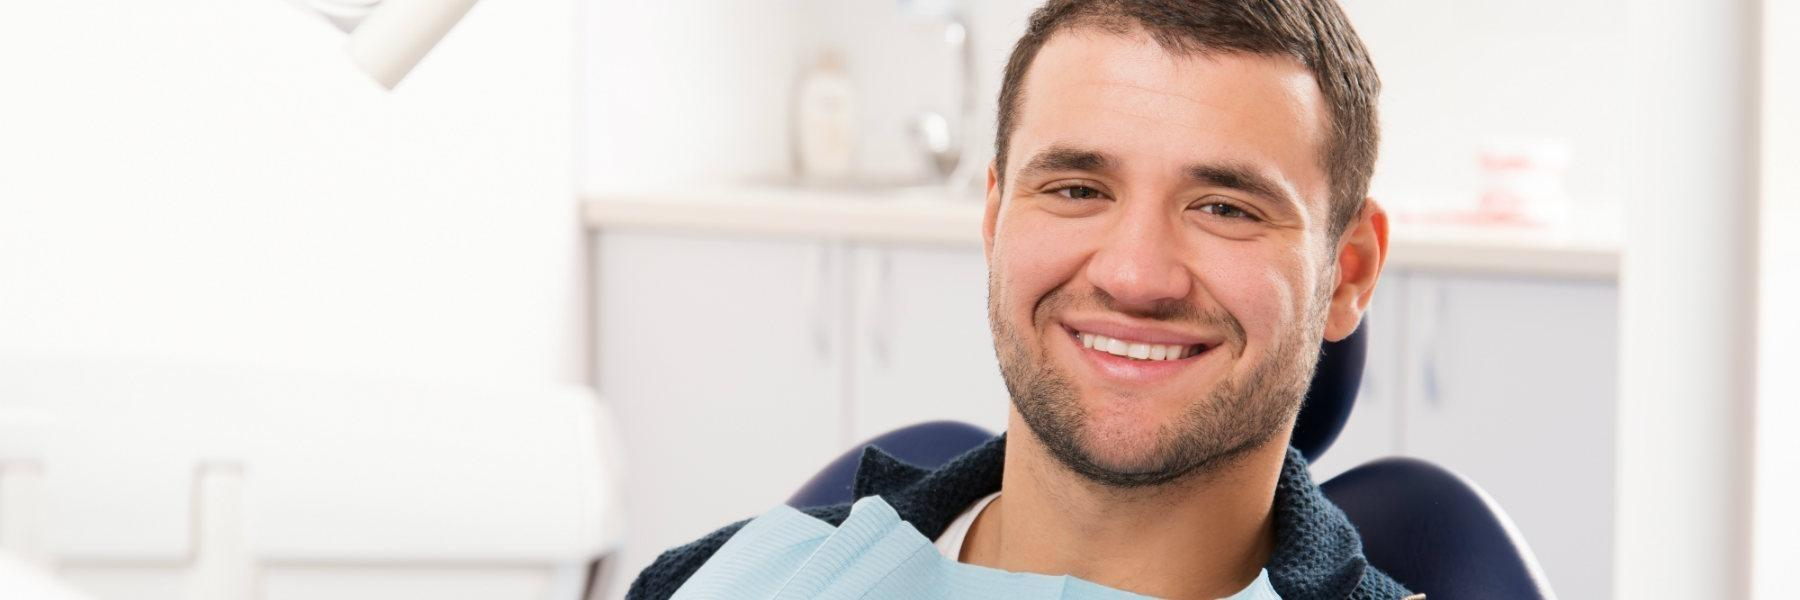 Periodontal Prevention and Treatment | Dentist